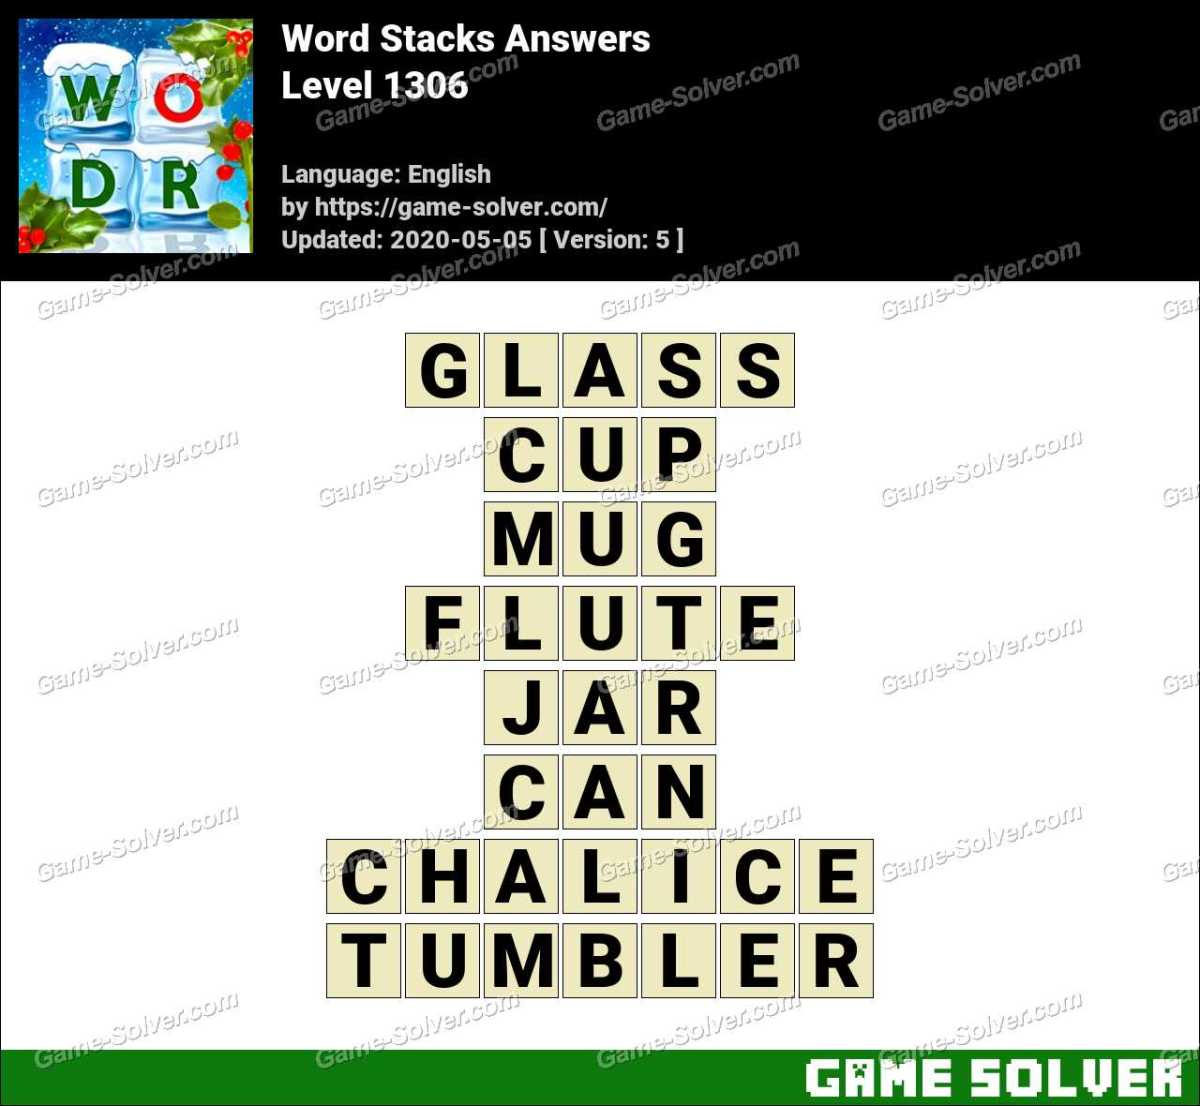 Word Stacks Level 1306 Answers